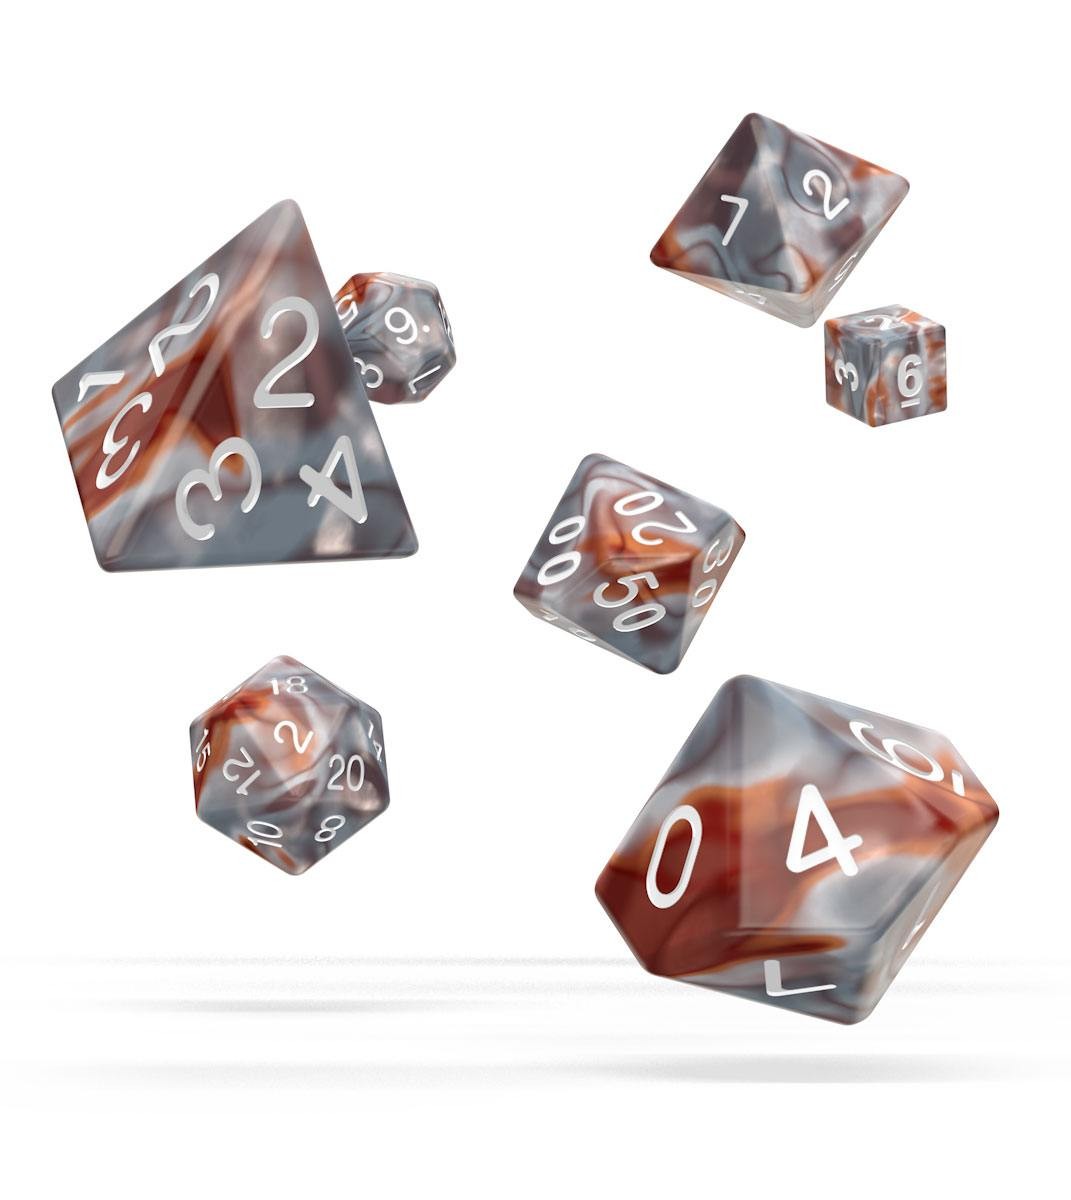 Kocka Set (7) - Oakie Doakie Dice RPG Set Gemidice - Silver-Rust